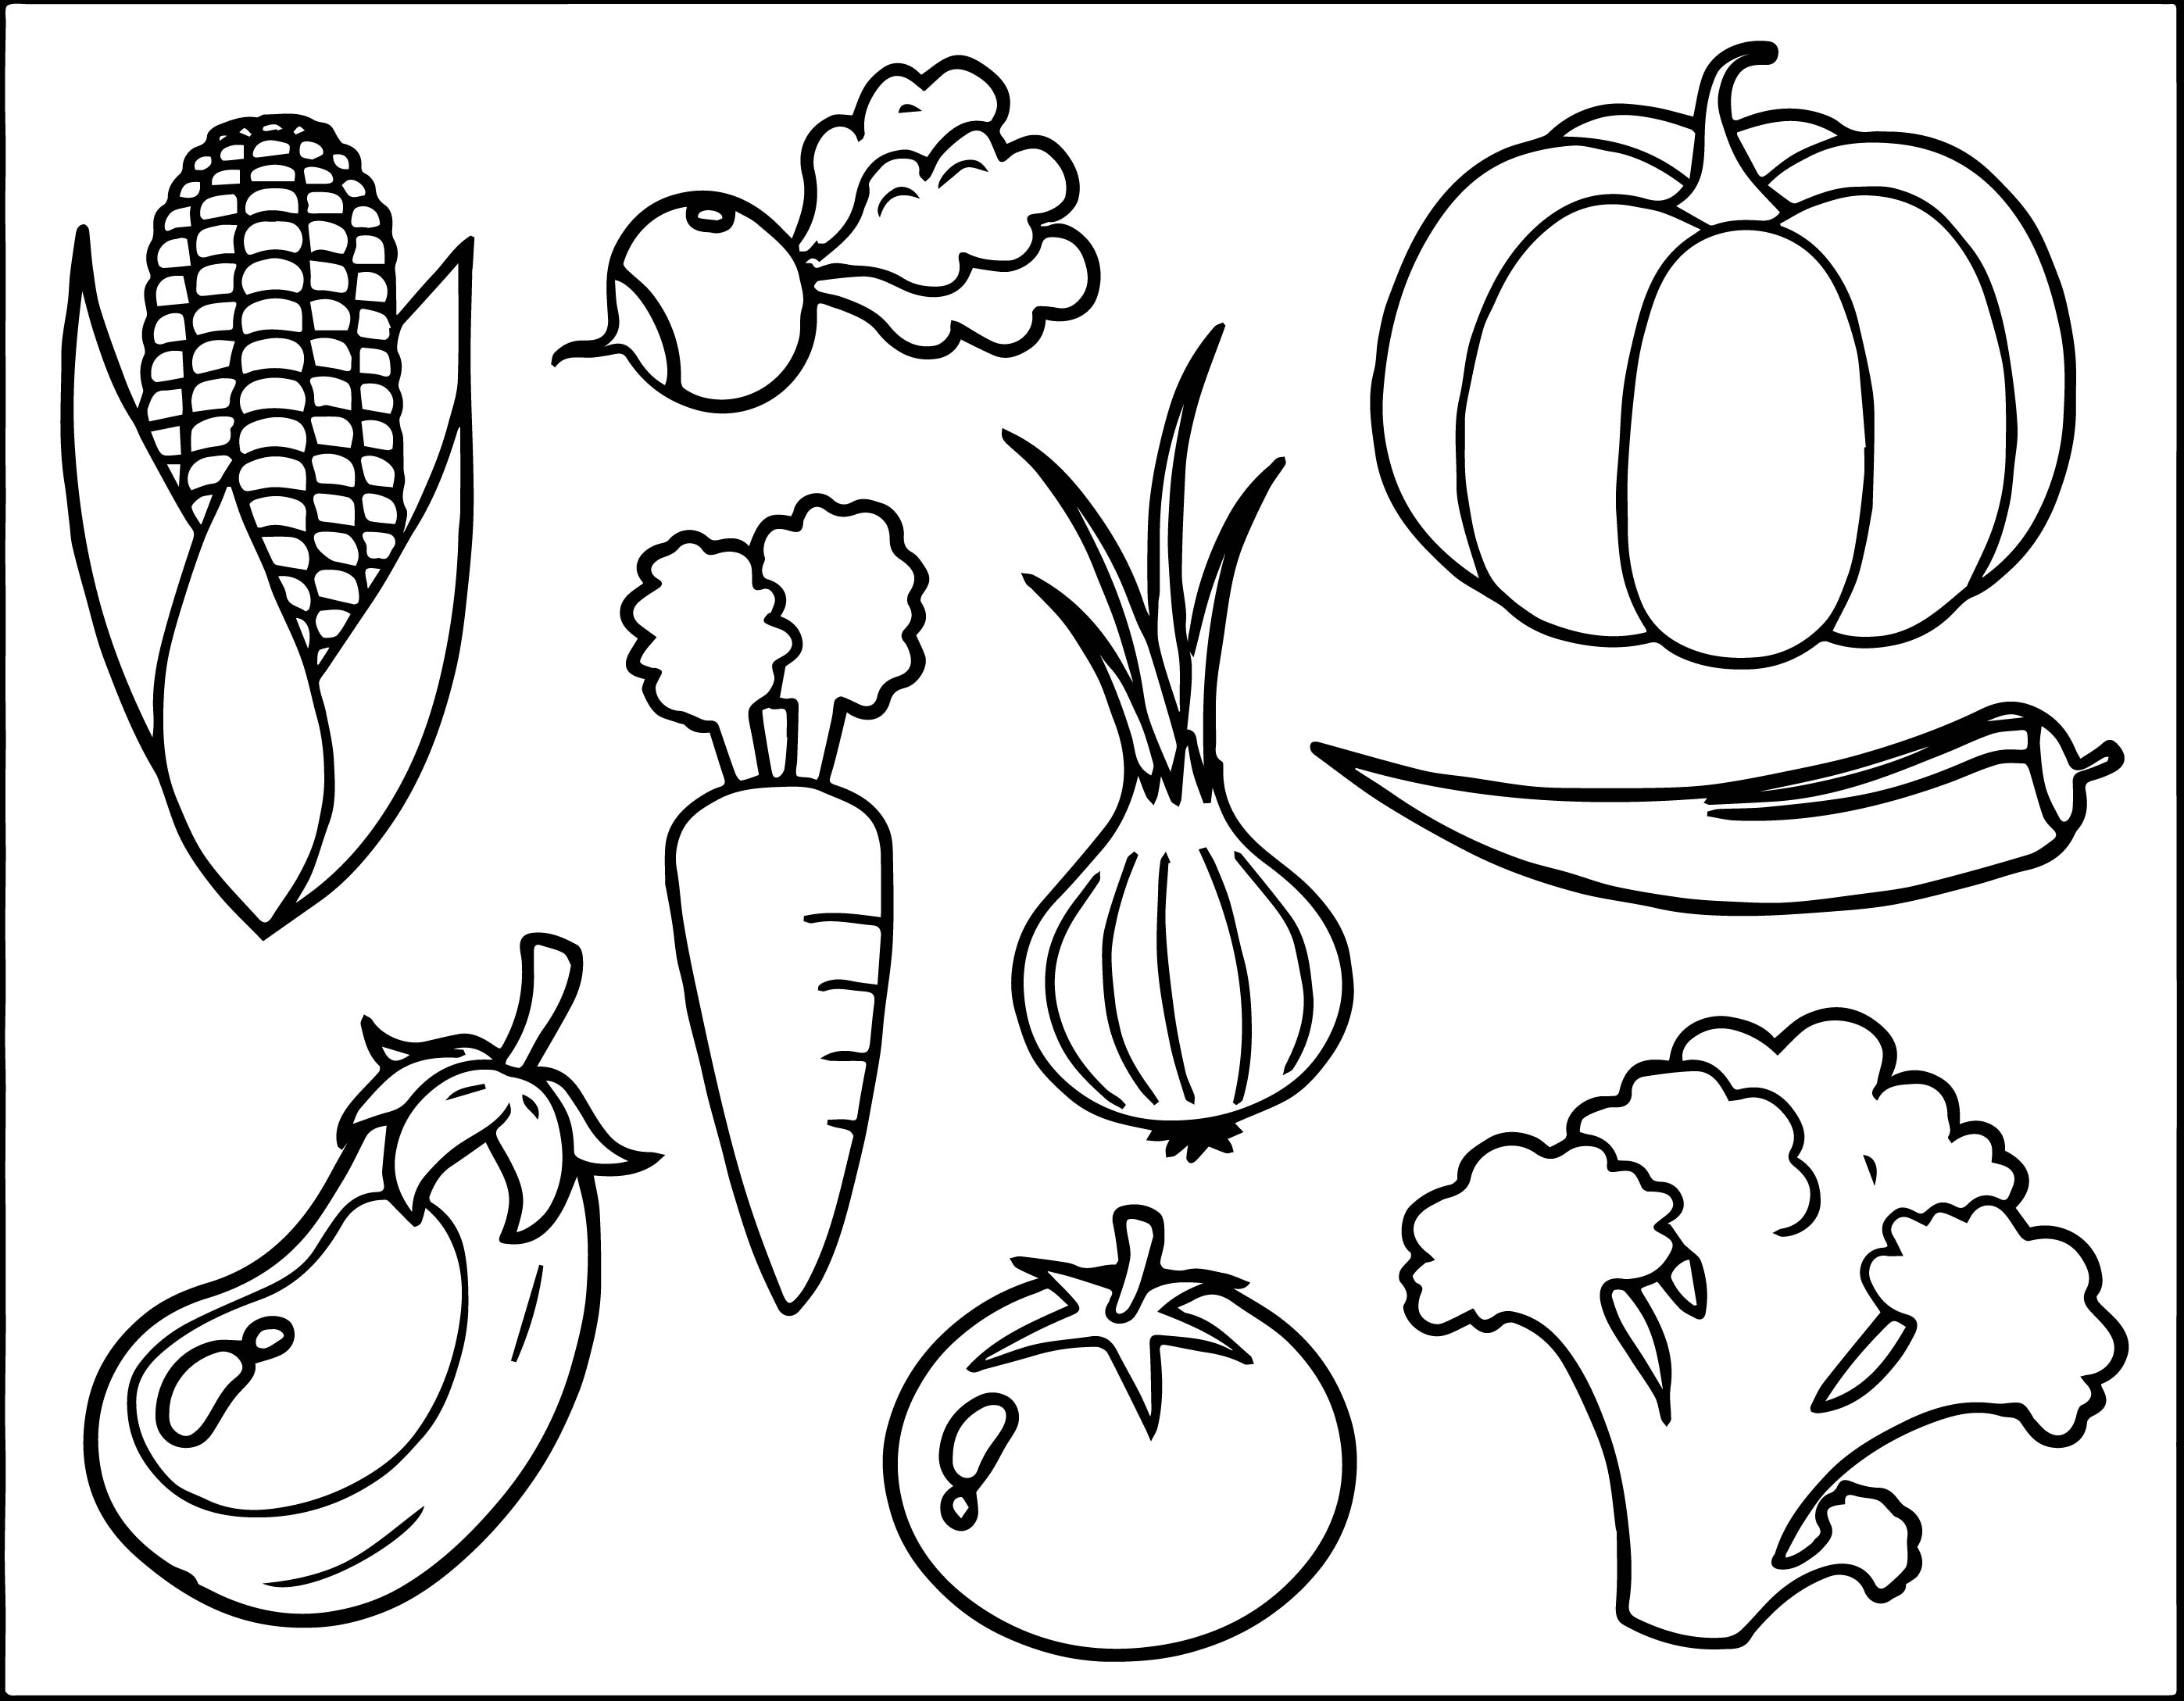 free printable coloring pages of vegetables vegetable coloring pages best coloring pages for kids free pages of printable vegetables coloring